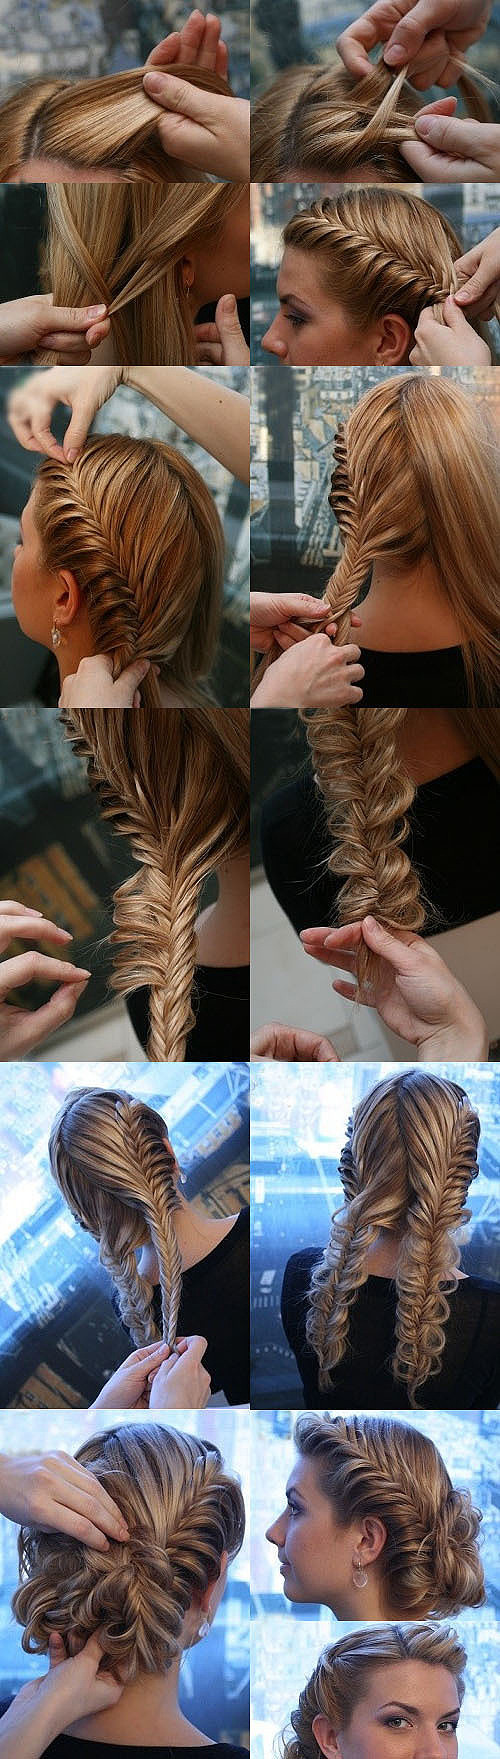 Hairstyle Tutorials (20)